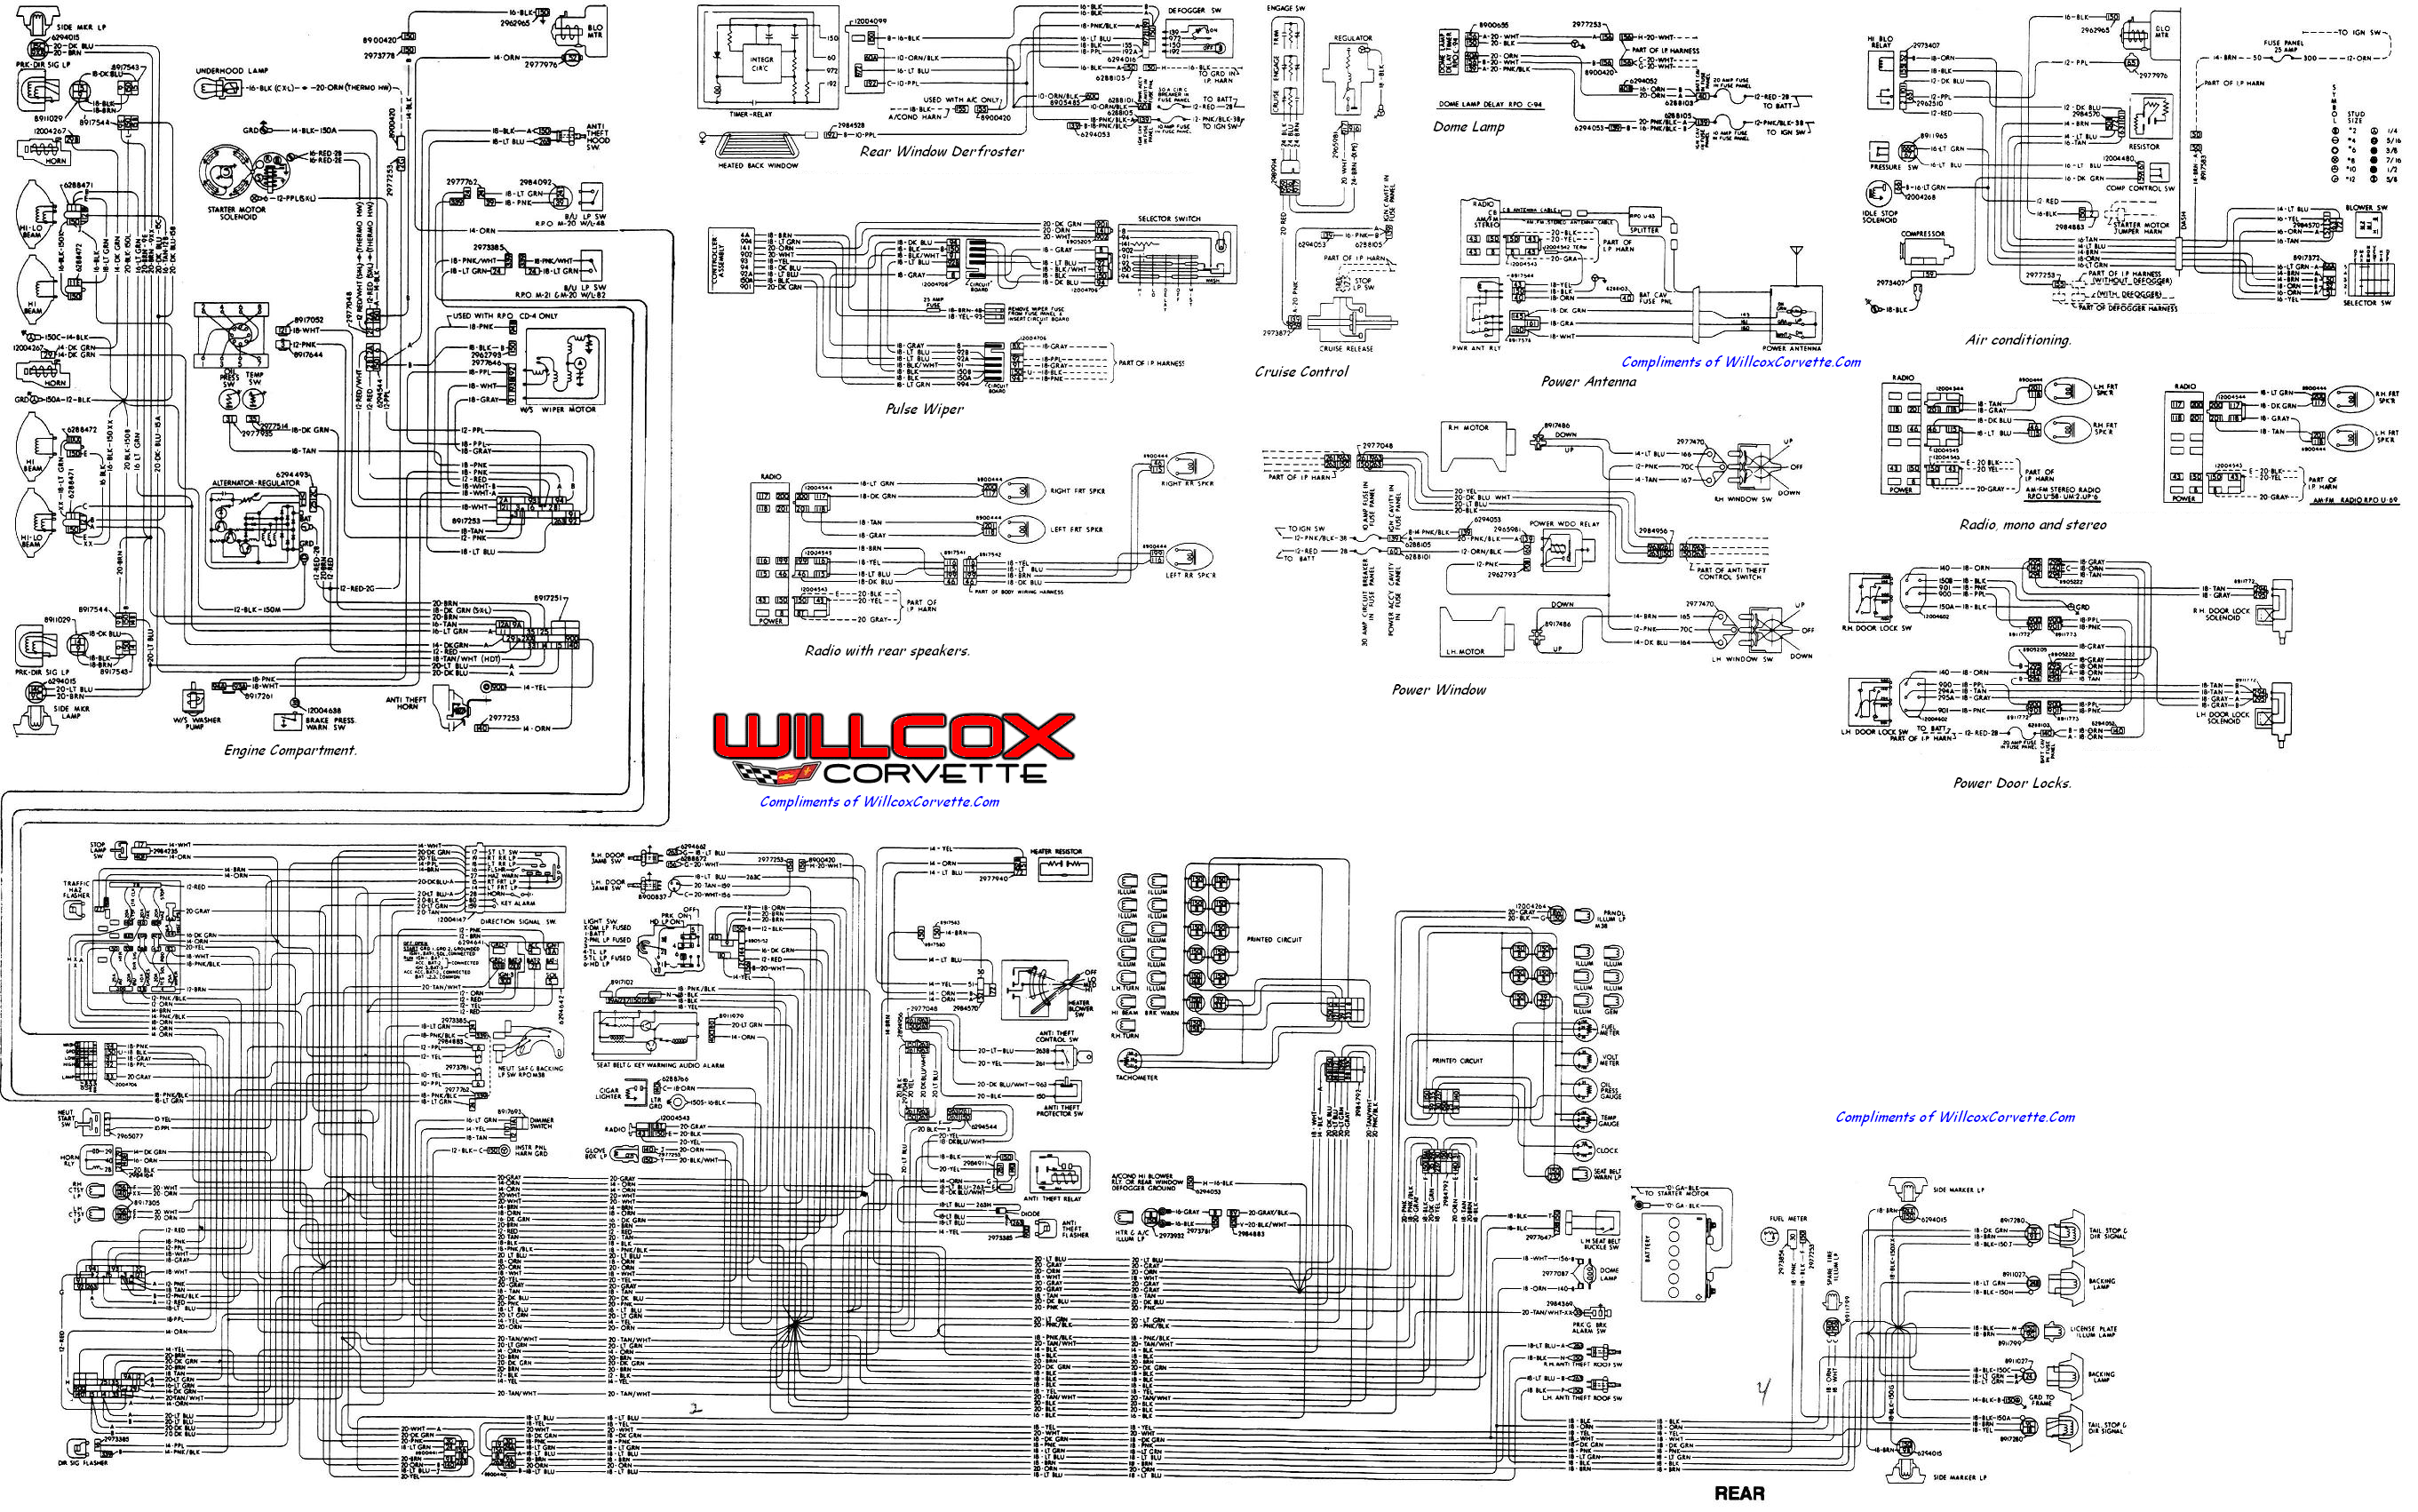 1978 Corvette Tracer Schematic. | Willcox Corvette, Inc.